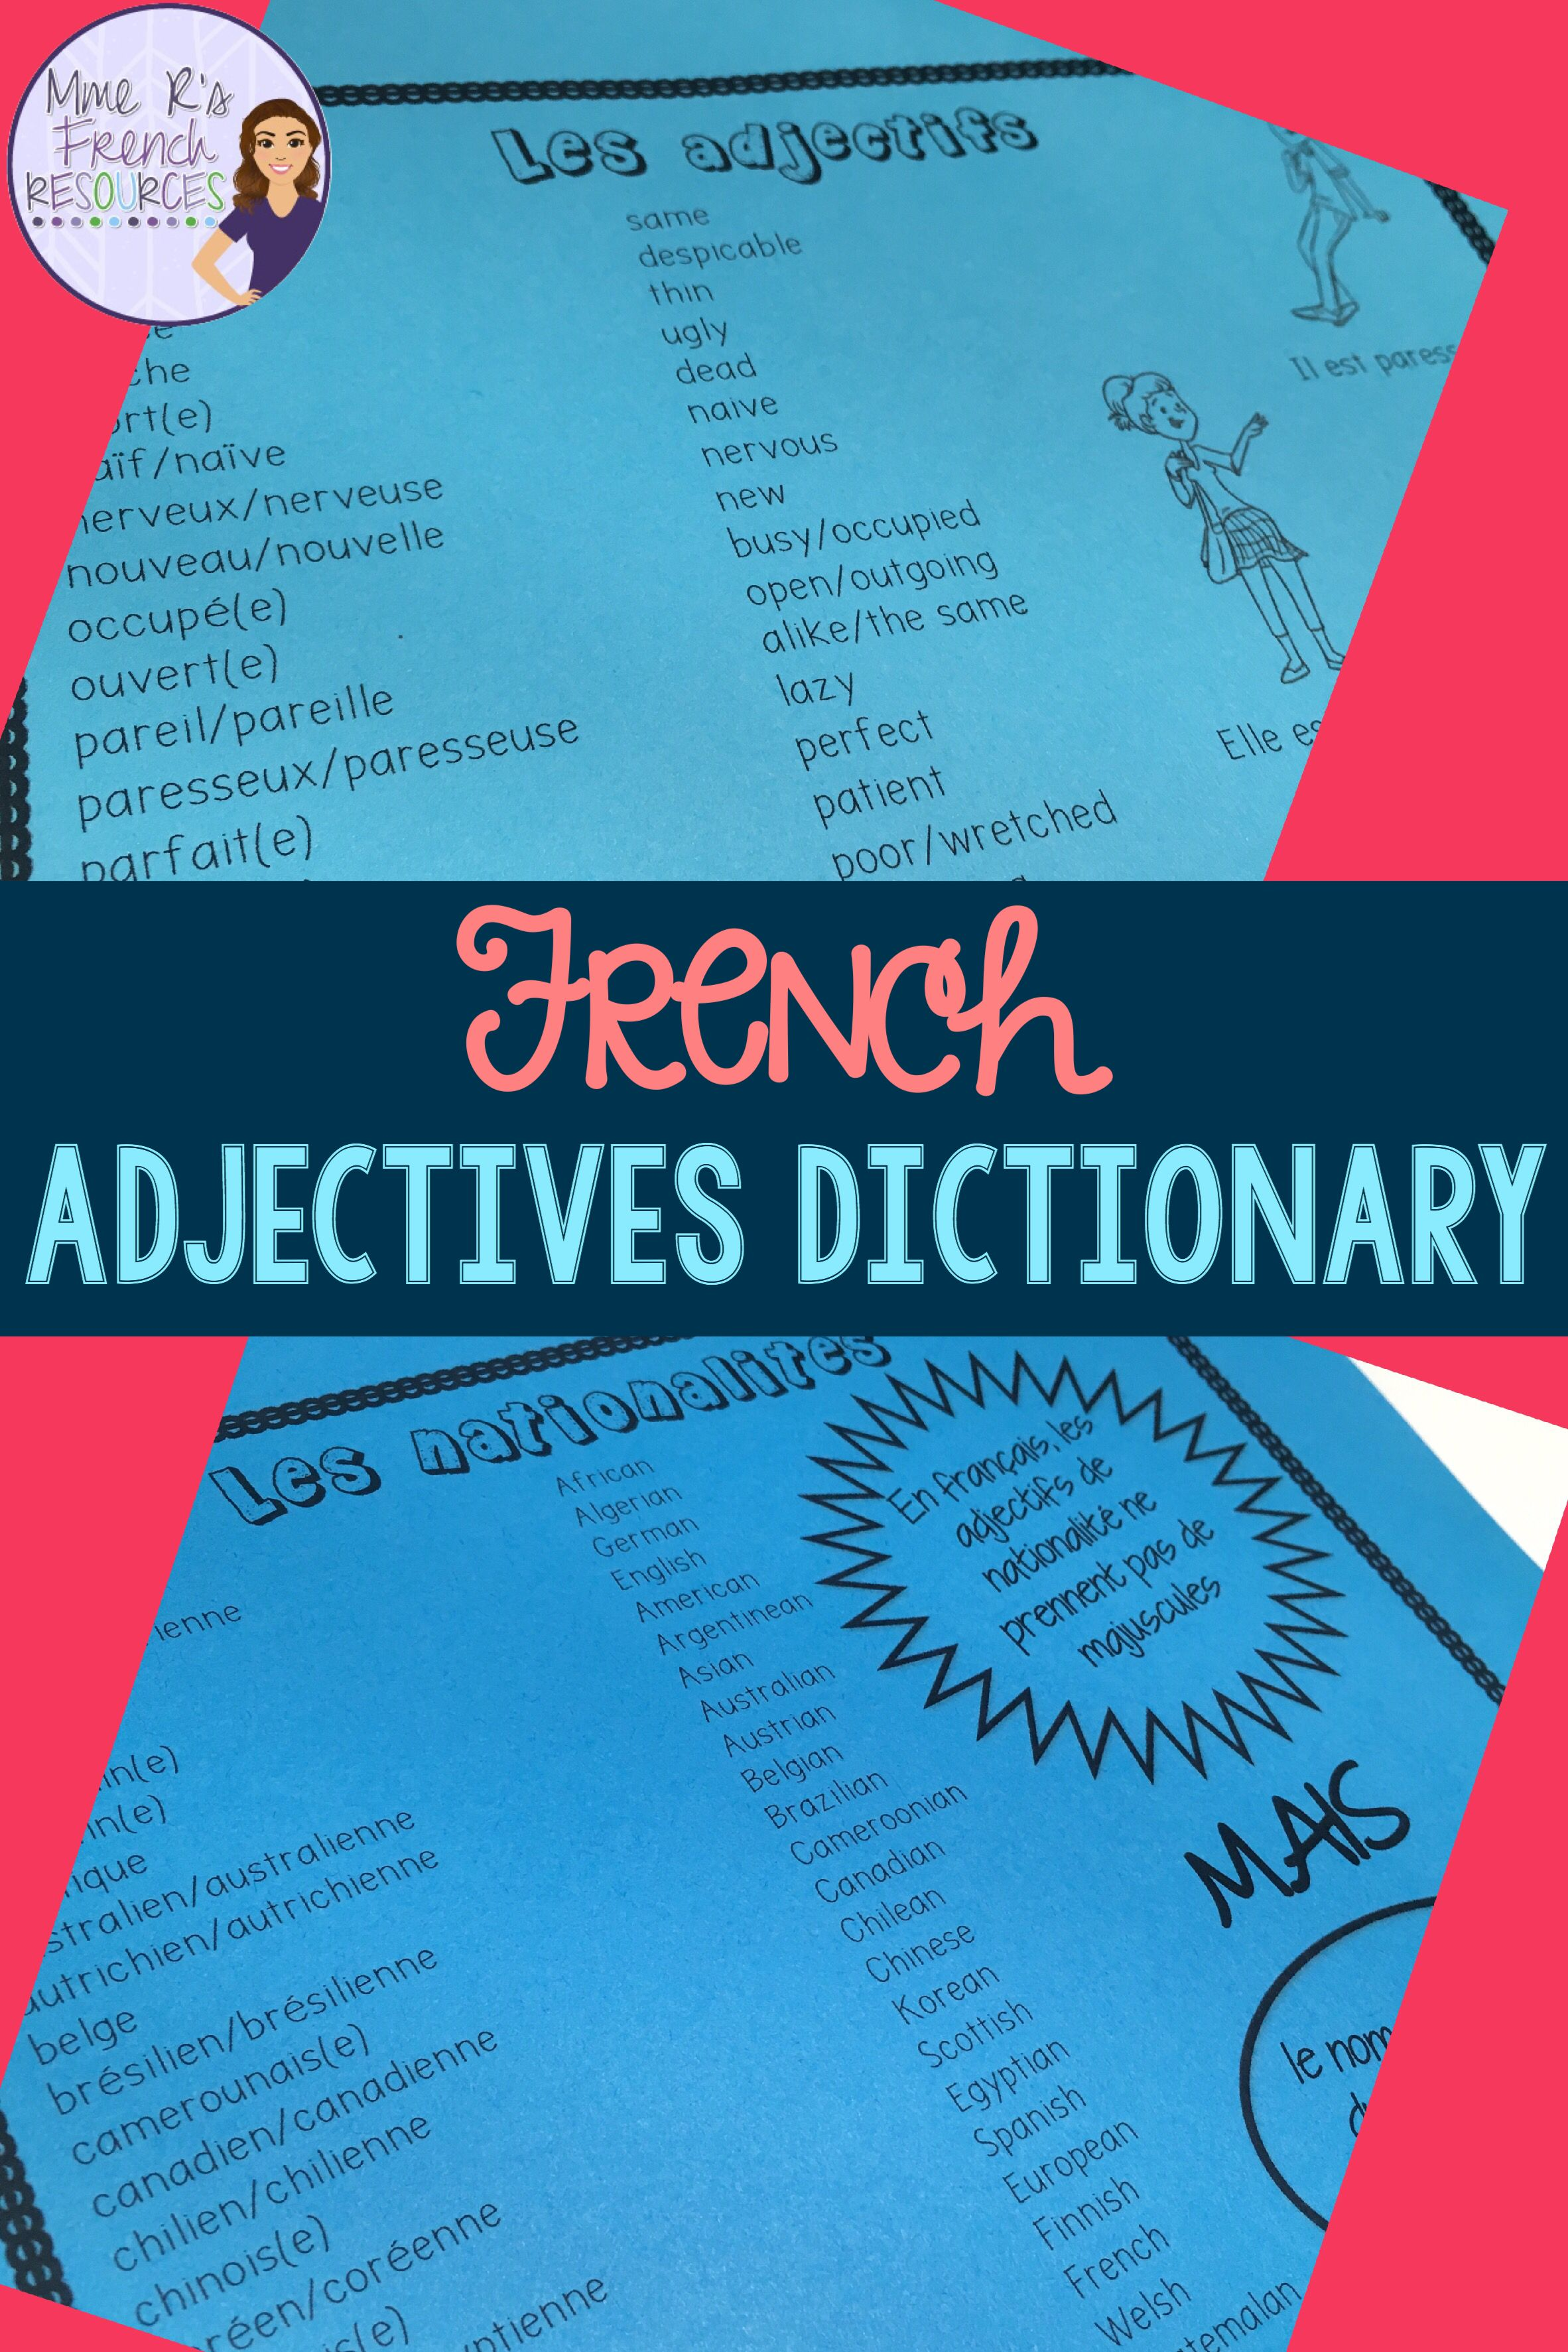 French Adjectives List With English Translations Mon Dictionnaire Des Adjectifs